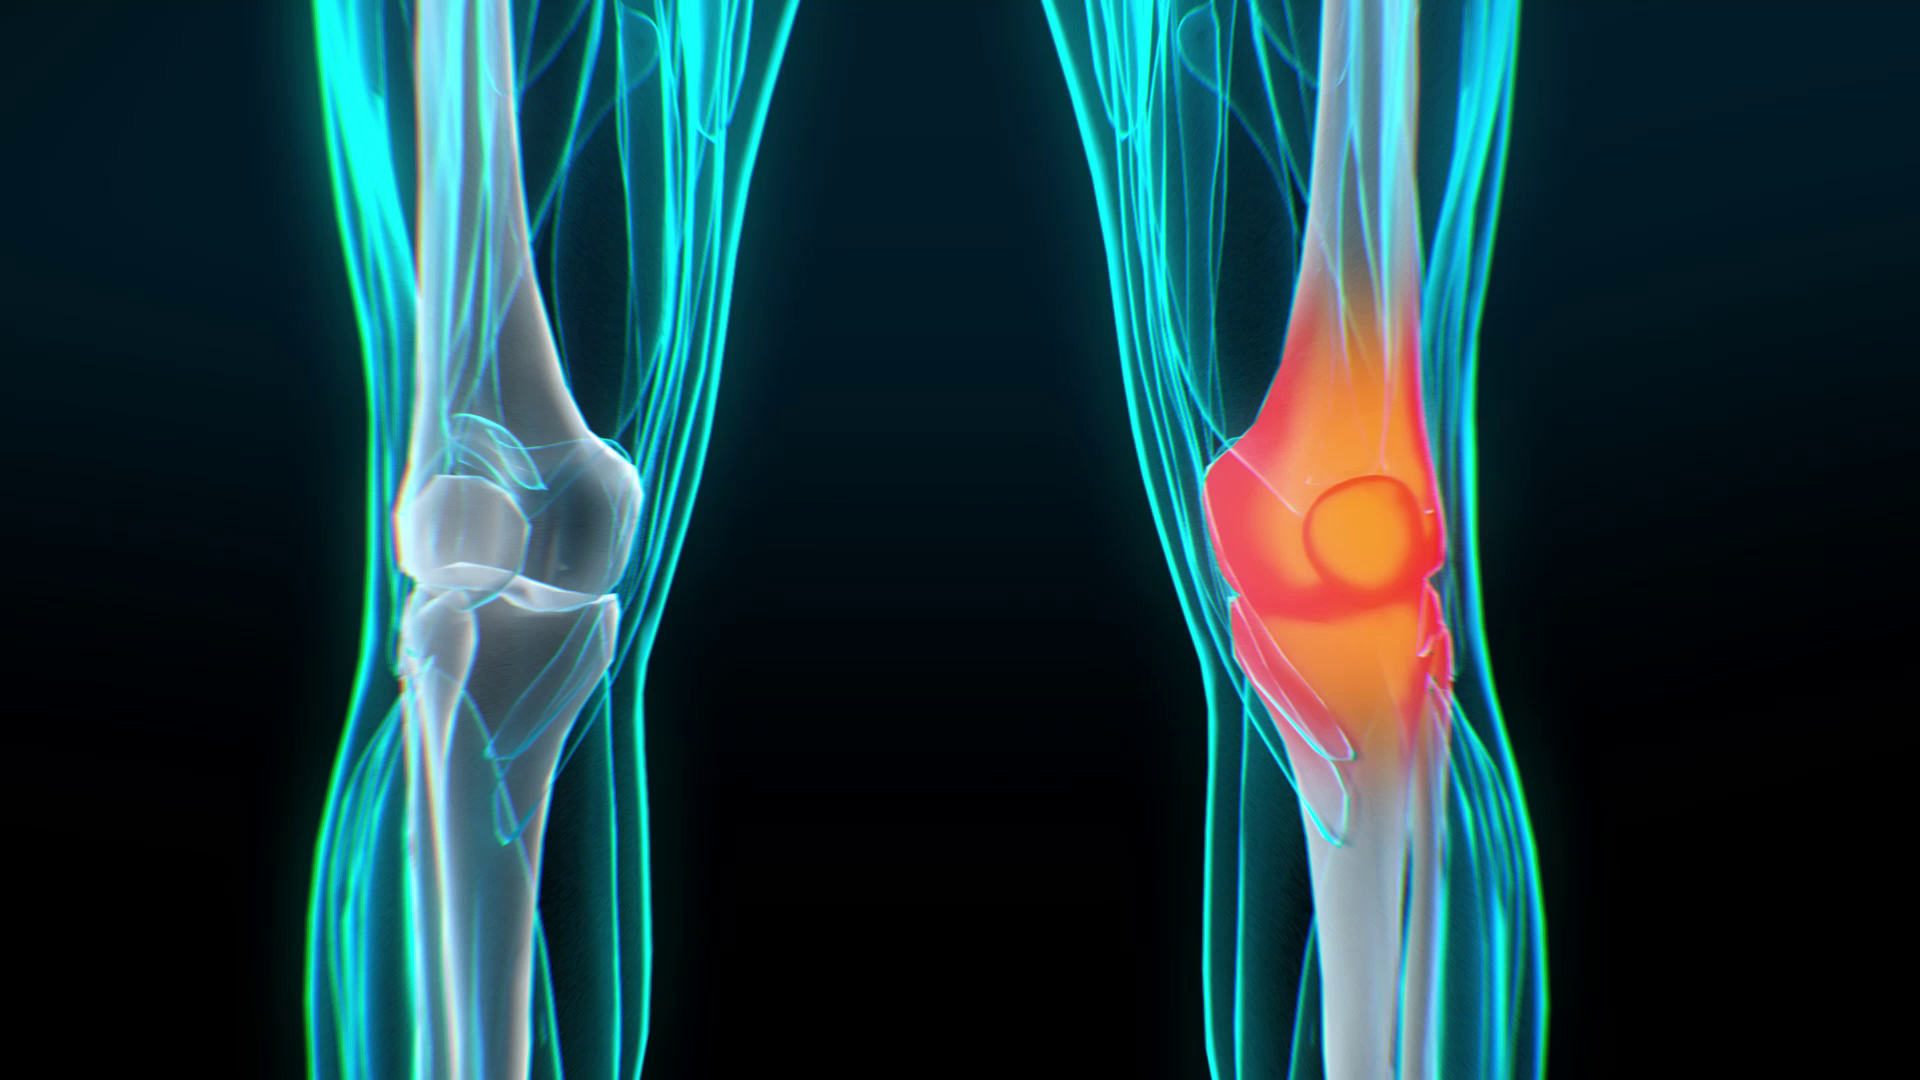 Inflammation of the knee - Explainer Video by Darvideo